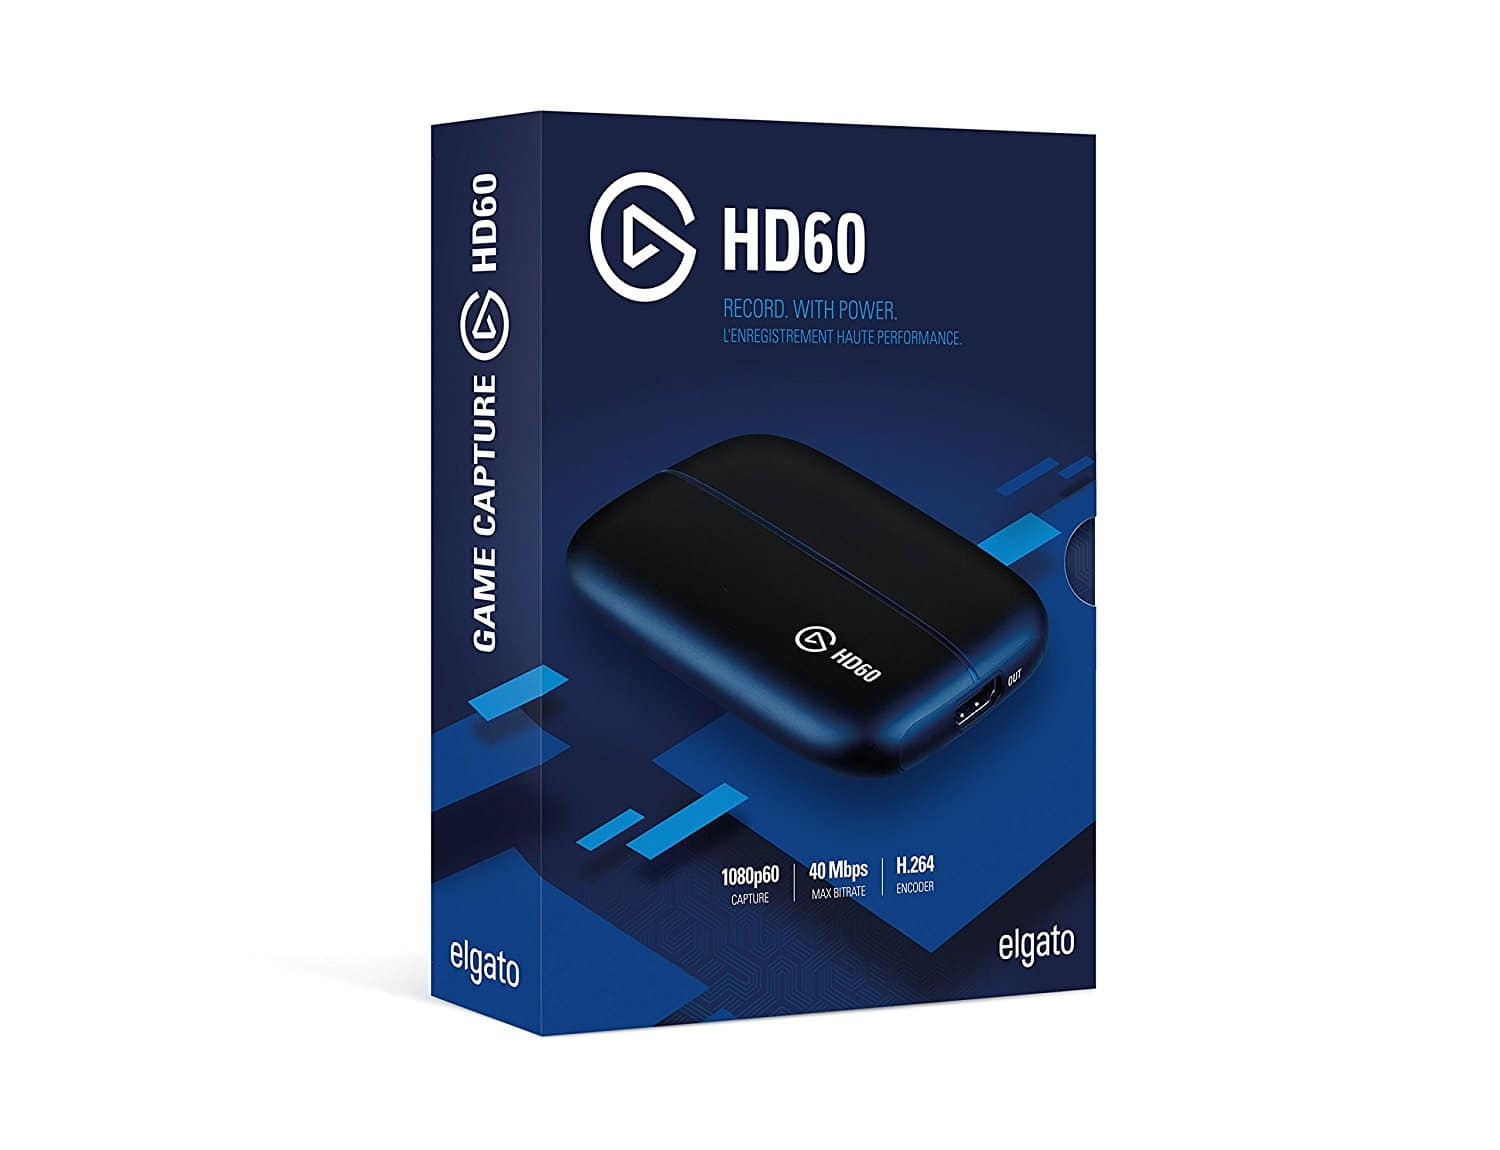 Elgato Game Capture HD60, for PS4, Xbox One, Xbox 360, Wii U 1080P 60fps (Amazon $109.99)